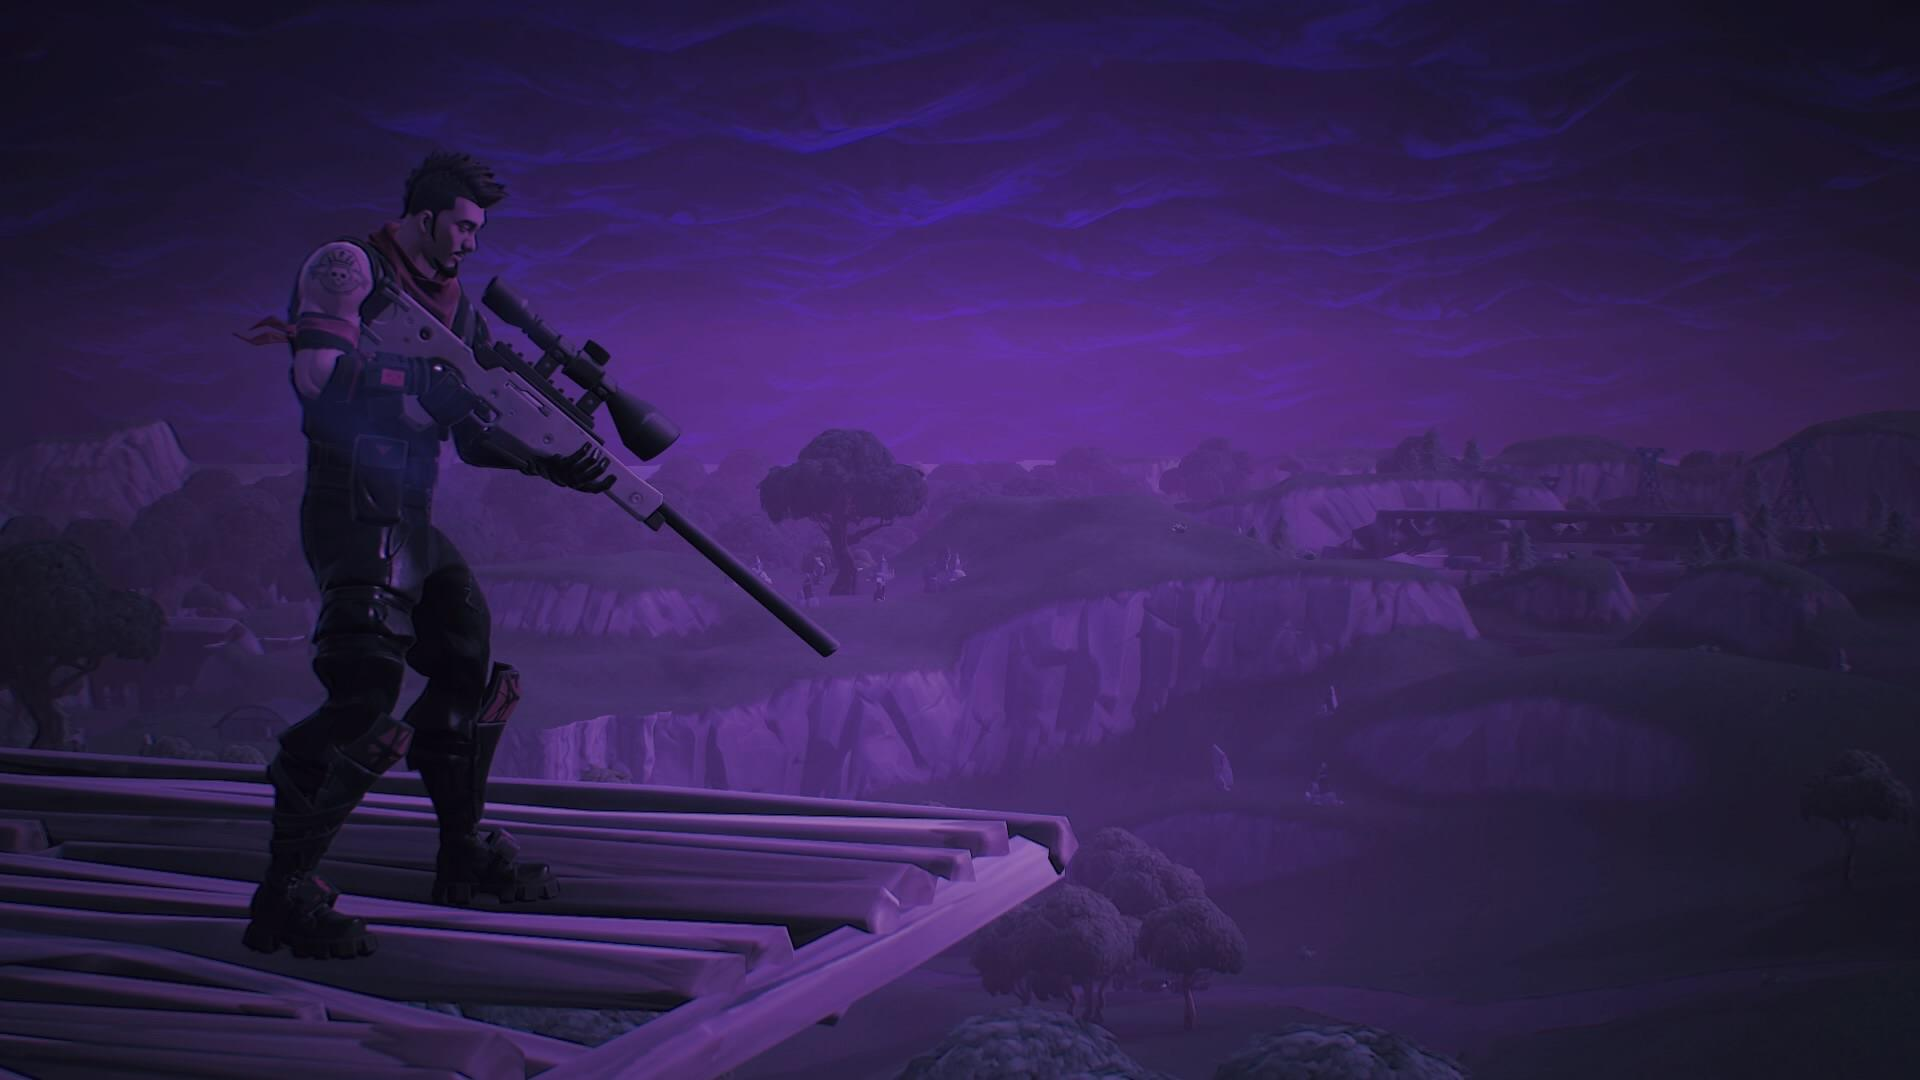 Fortnite Dark Voyager Wallpapers Posted By John Tremblay